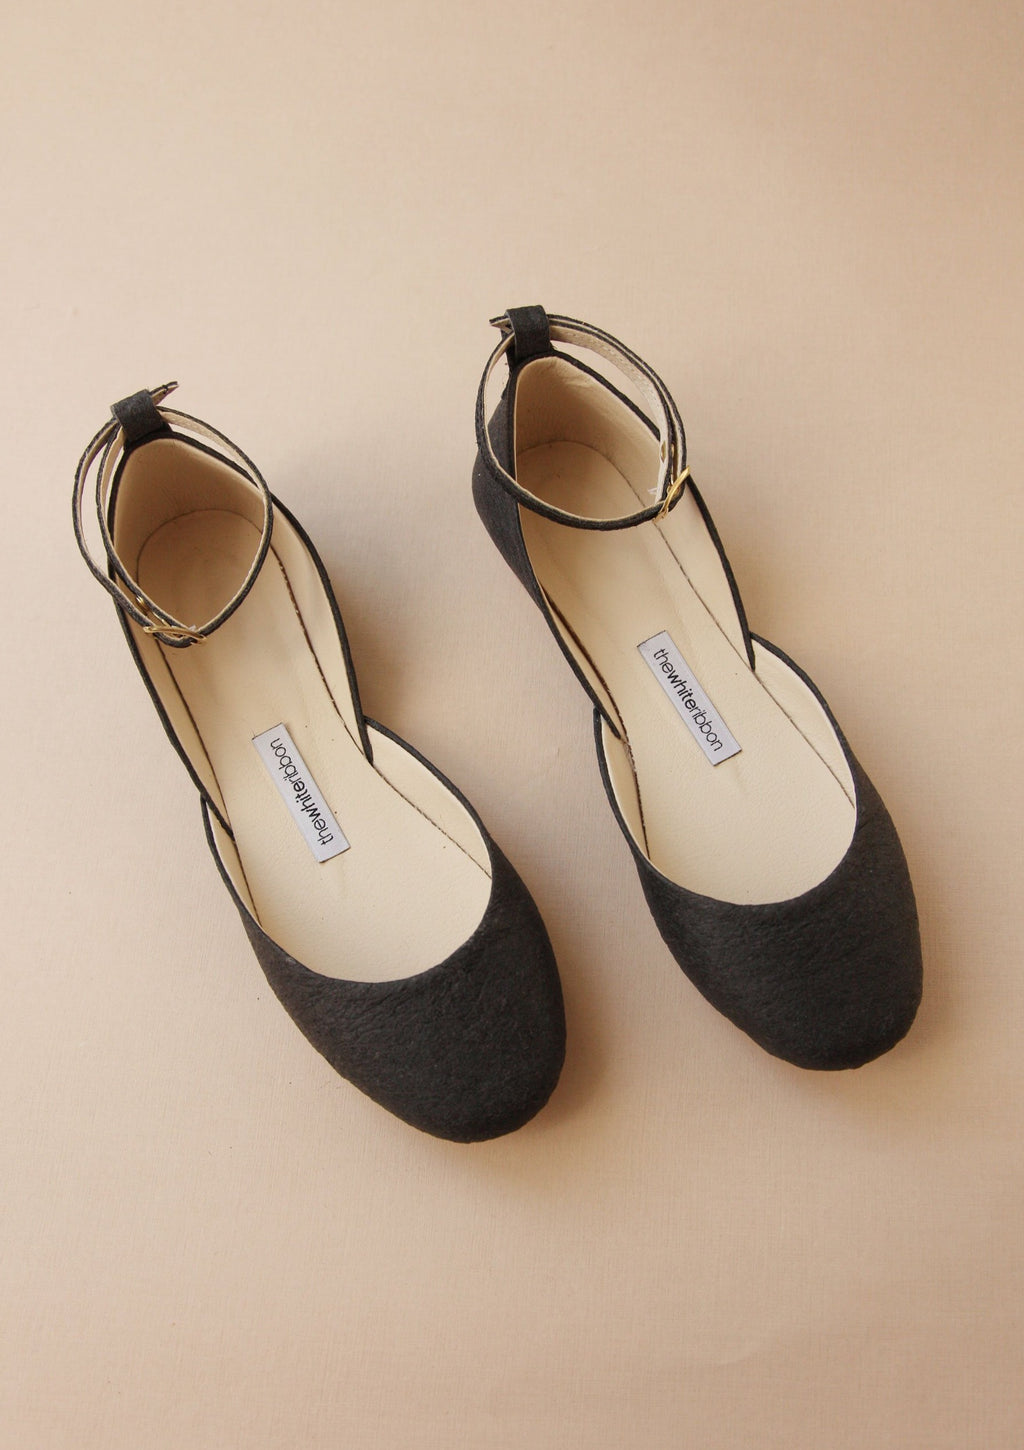 Vegan leather mary janes shoes in black